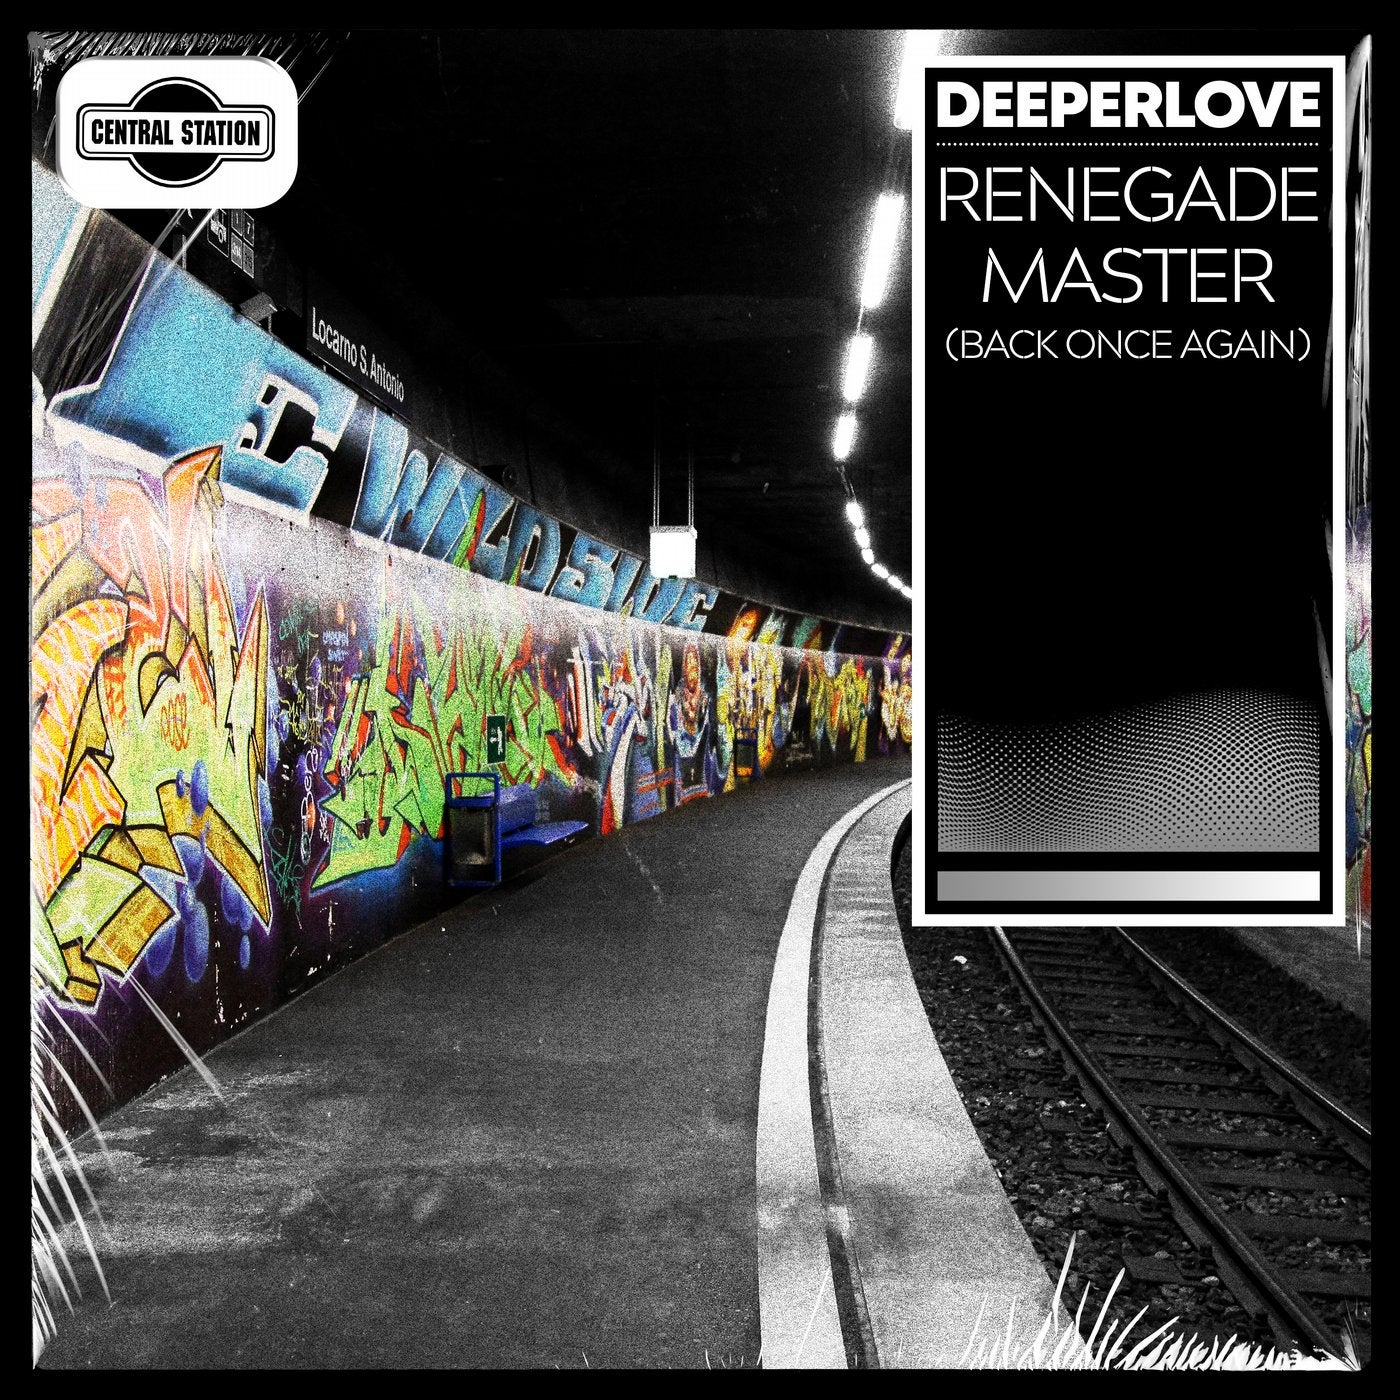 Renegade Master (Back Once Again) (Extended Mix)